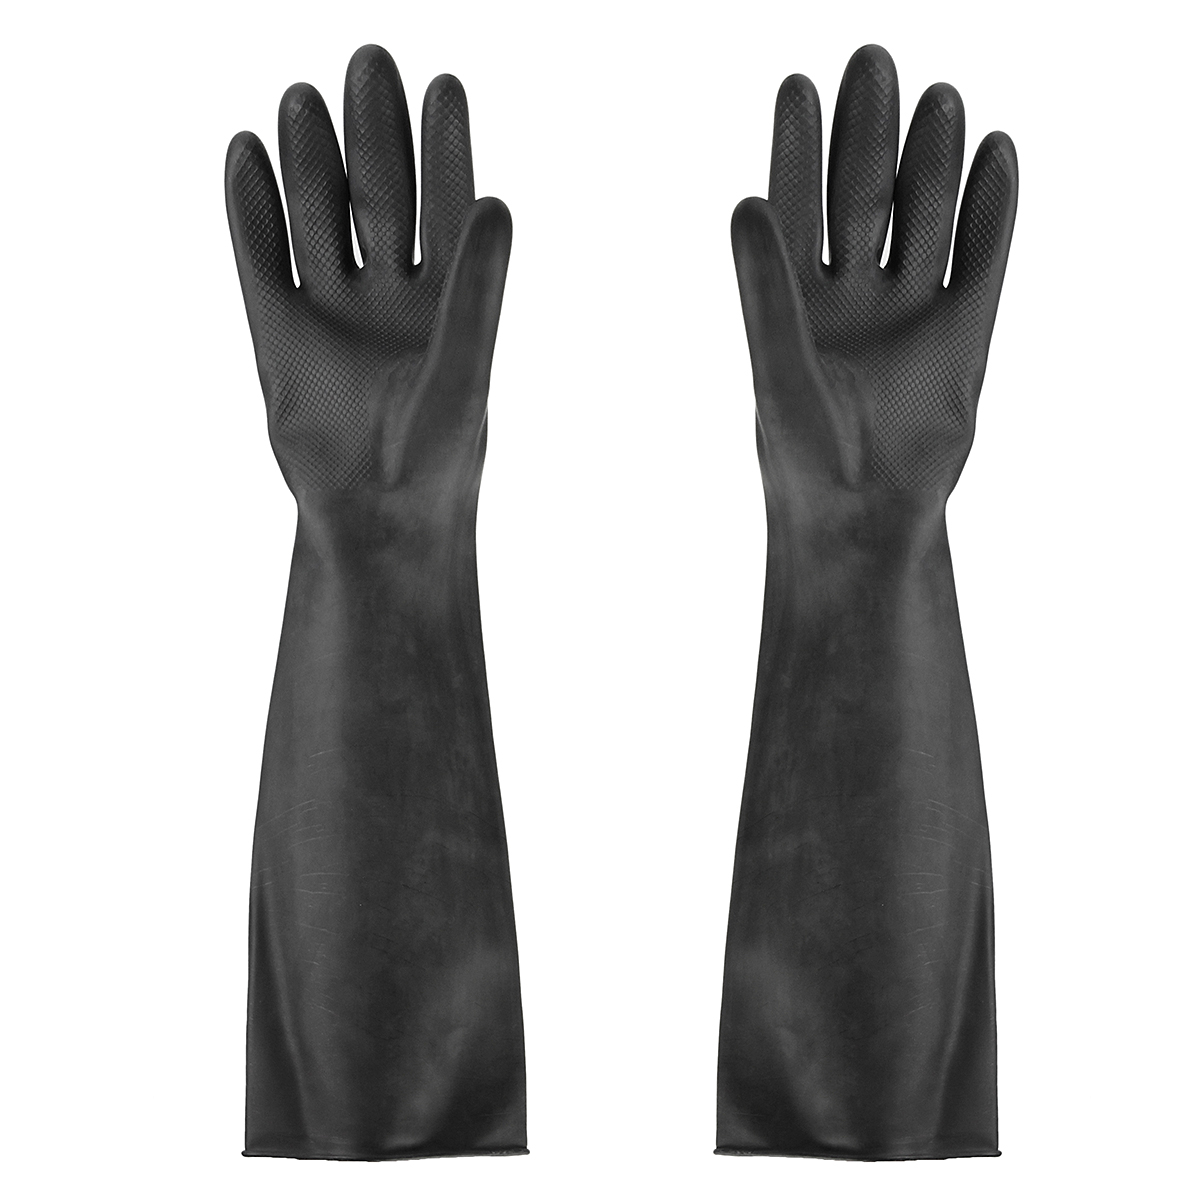 60cm Safety Gloves NEW Elbow-Long Industry Anti Acid Alkali Chemical Resistant Rubber Work Gloves Safety Glove Black 23.6inch free shipping household natural latex thicken acid alkali resistant gloves safety gloves waterproof resistance soiling